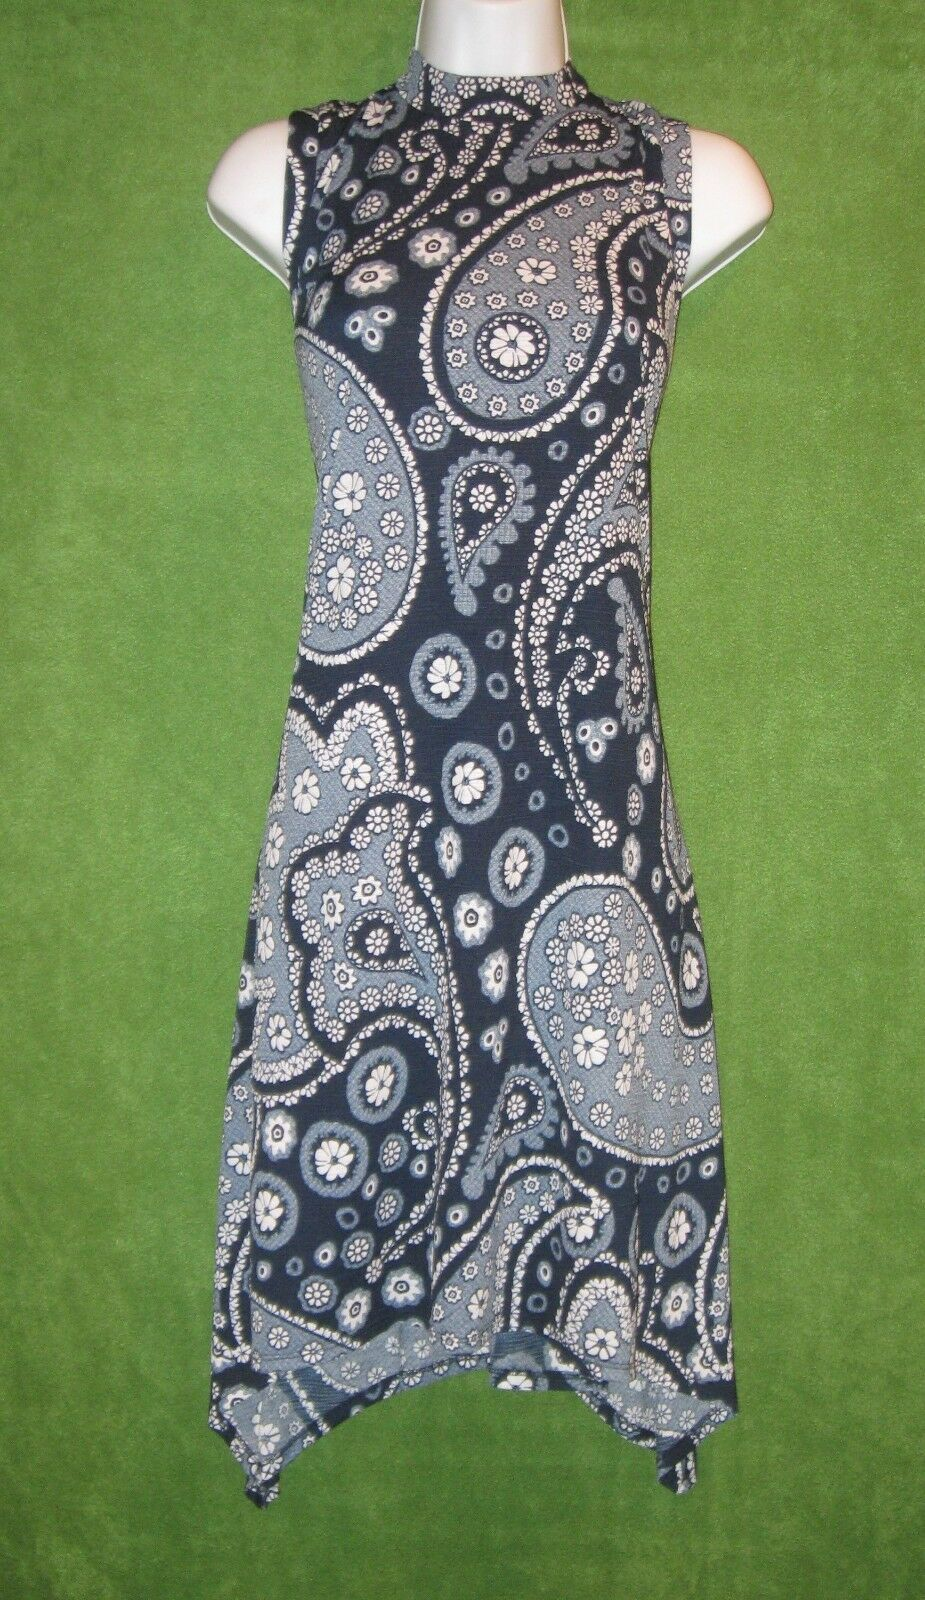 Beige by eci bluee Ivory Knit Floral Paisley Work Social Dress L 12 14